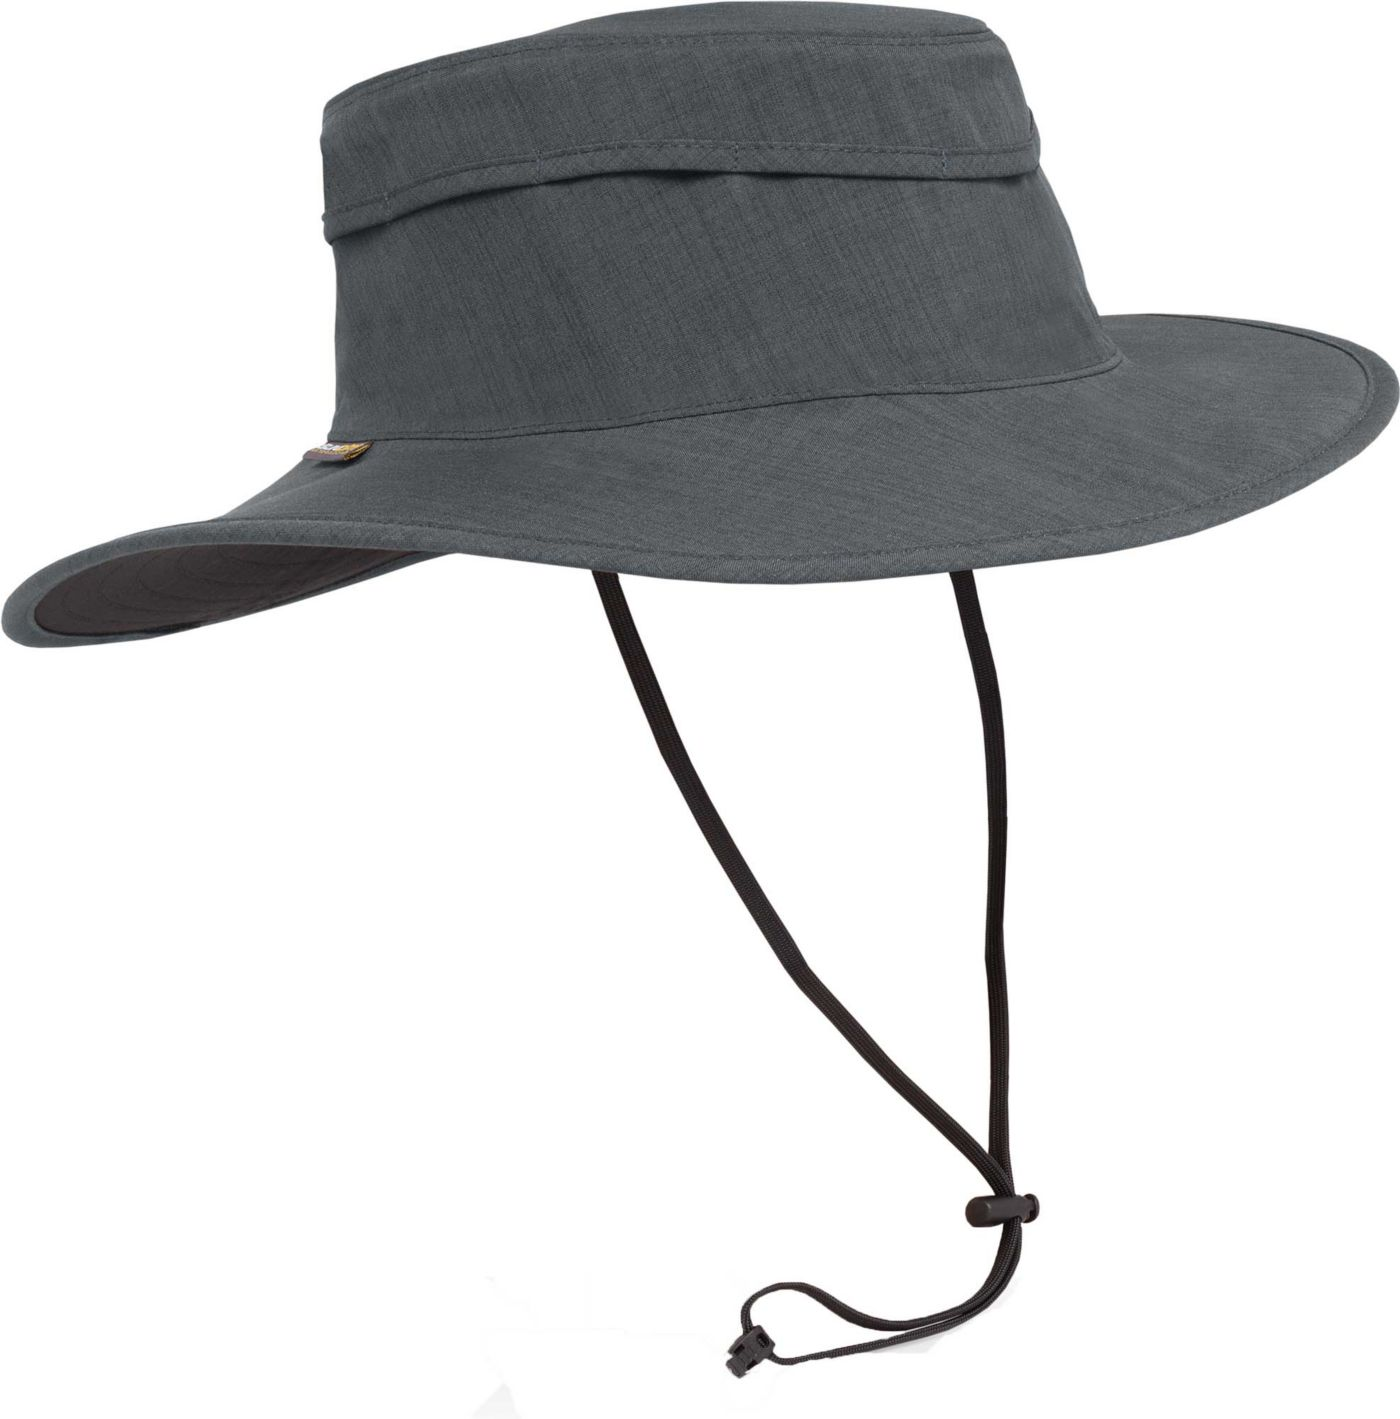 Sunday Afternoons Men's Rain Shadow Hat